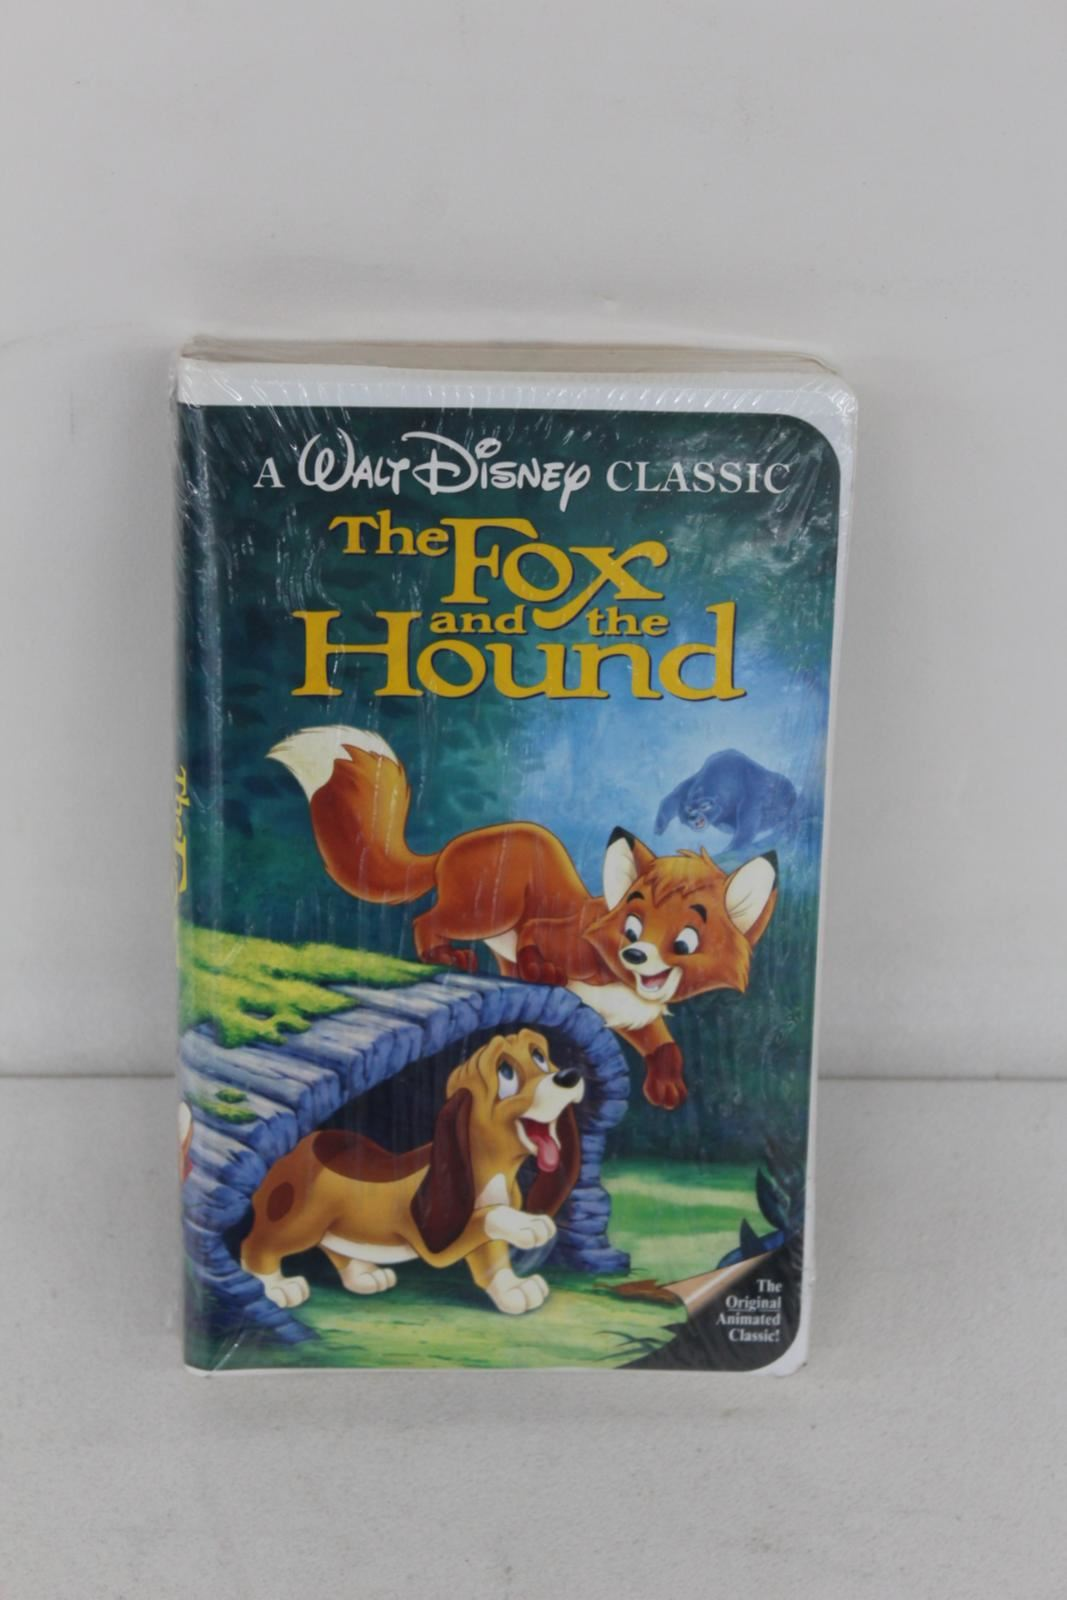 NEW-WALT-DISNEY-The-Fox-And-The-Hound-Sealed-VHS-Classic-Home-Video-Cassette